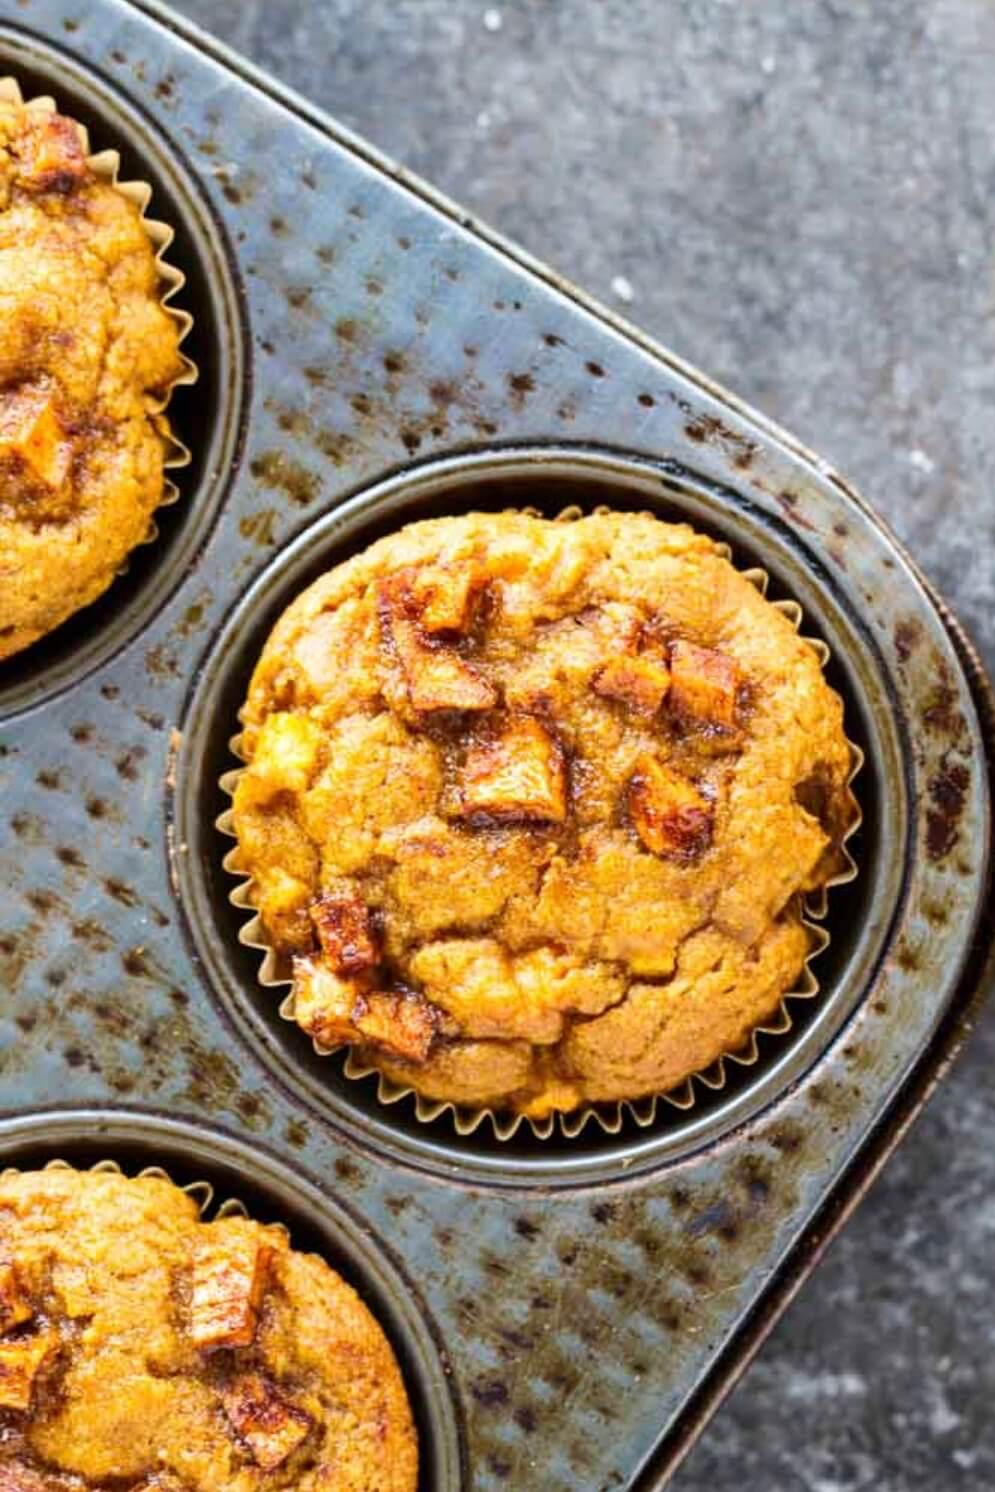 close up of an orange muffin with apples chunks on top